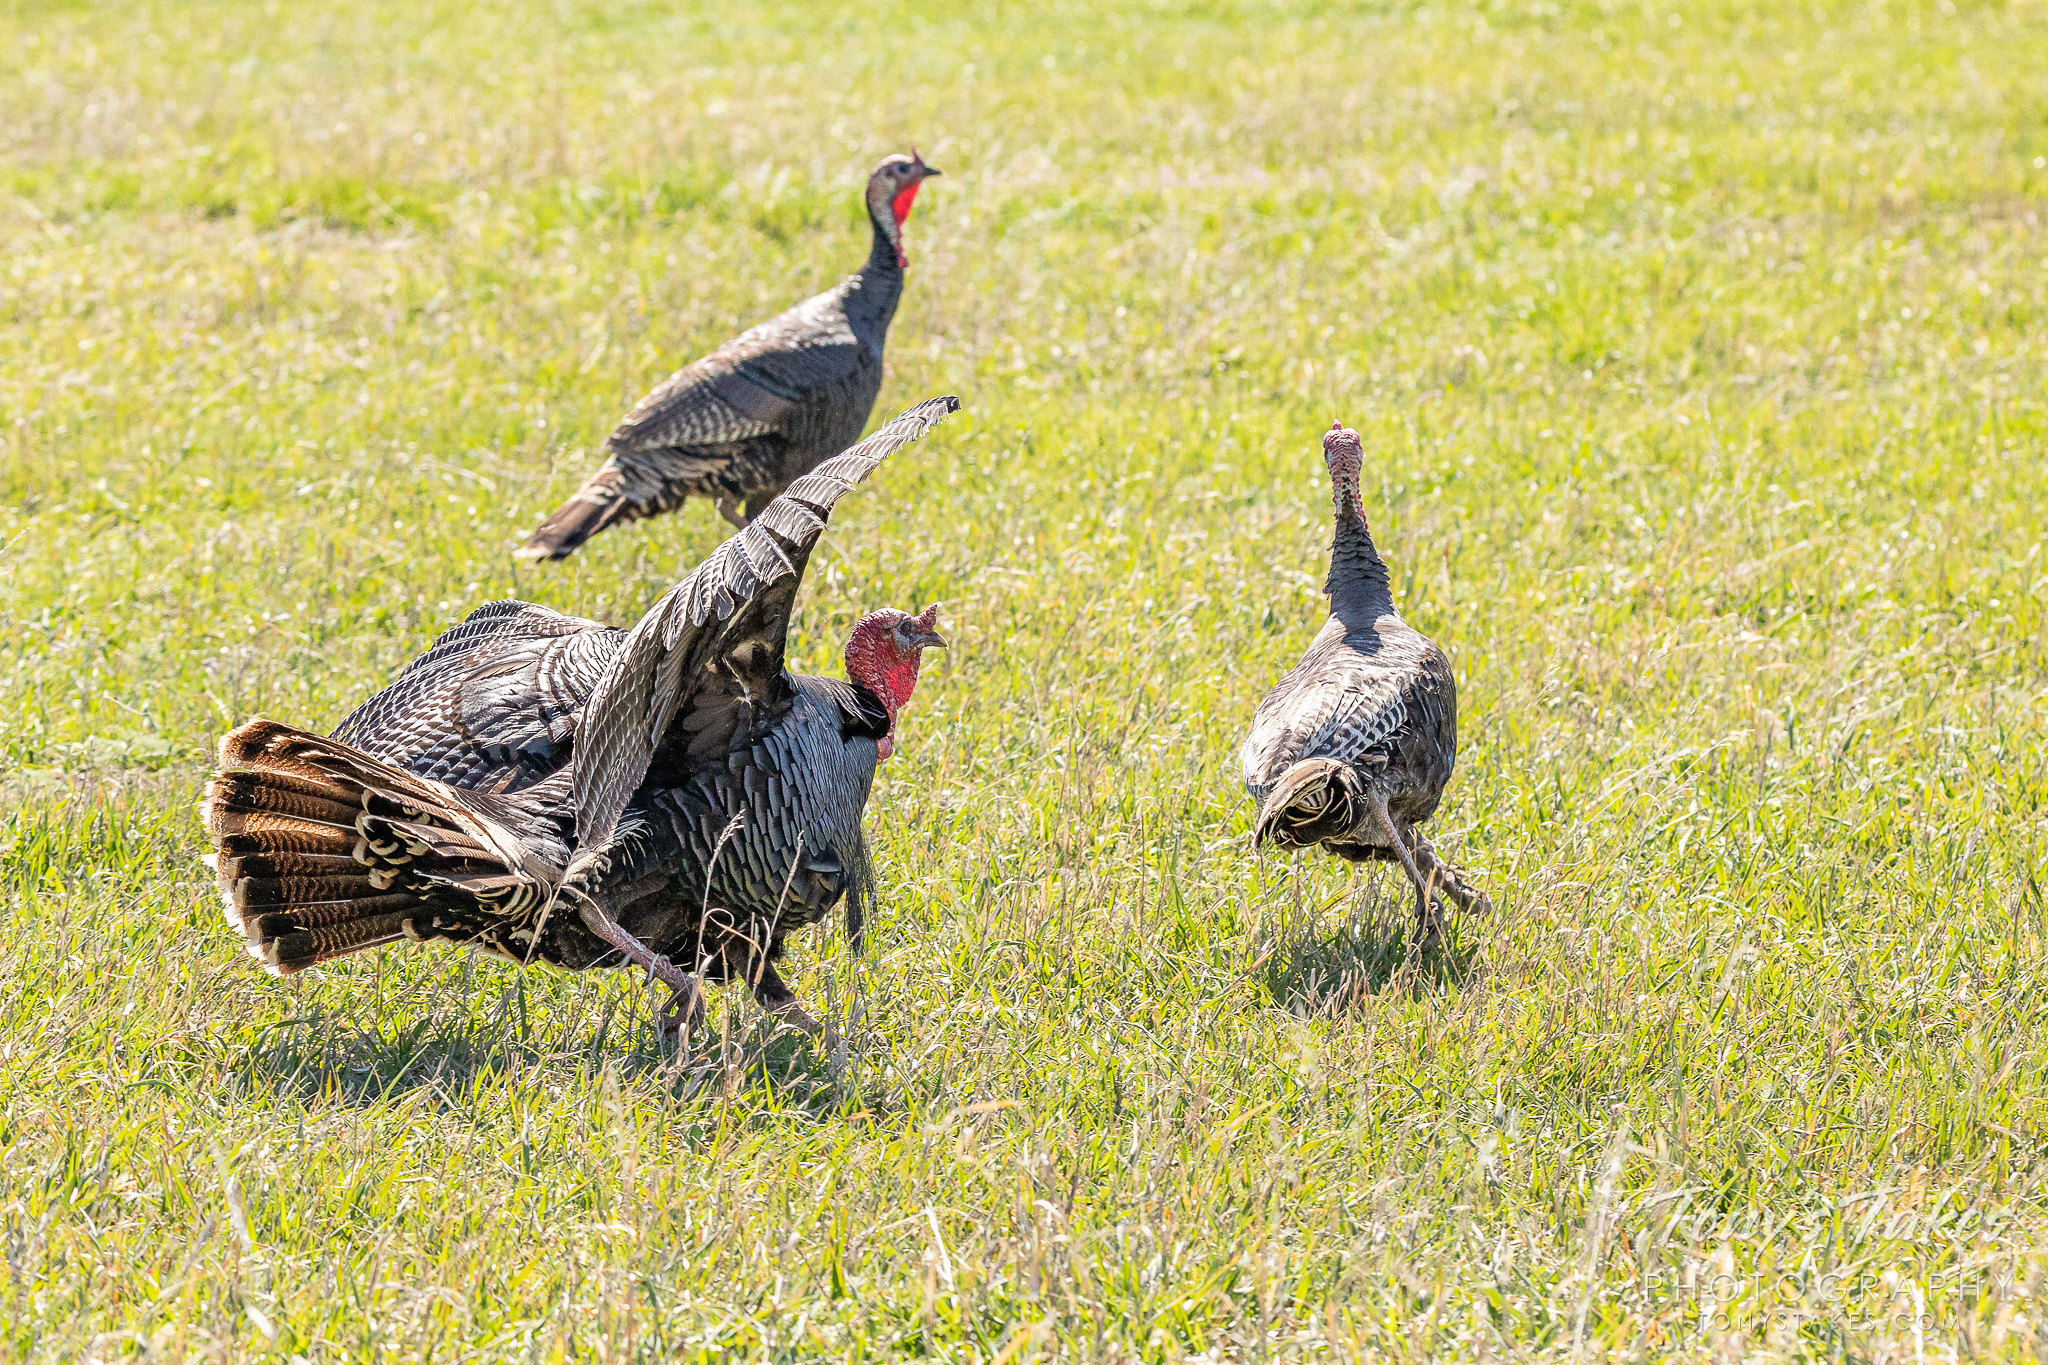 A turkey tom chases off a competitor in Thornton, Colorado. (© Tony's Takes)